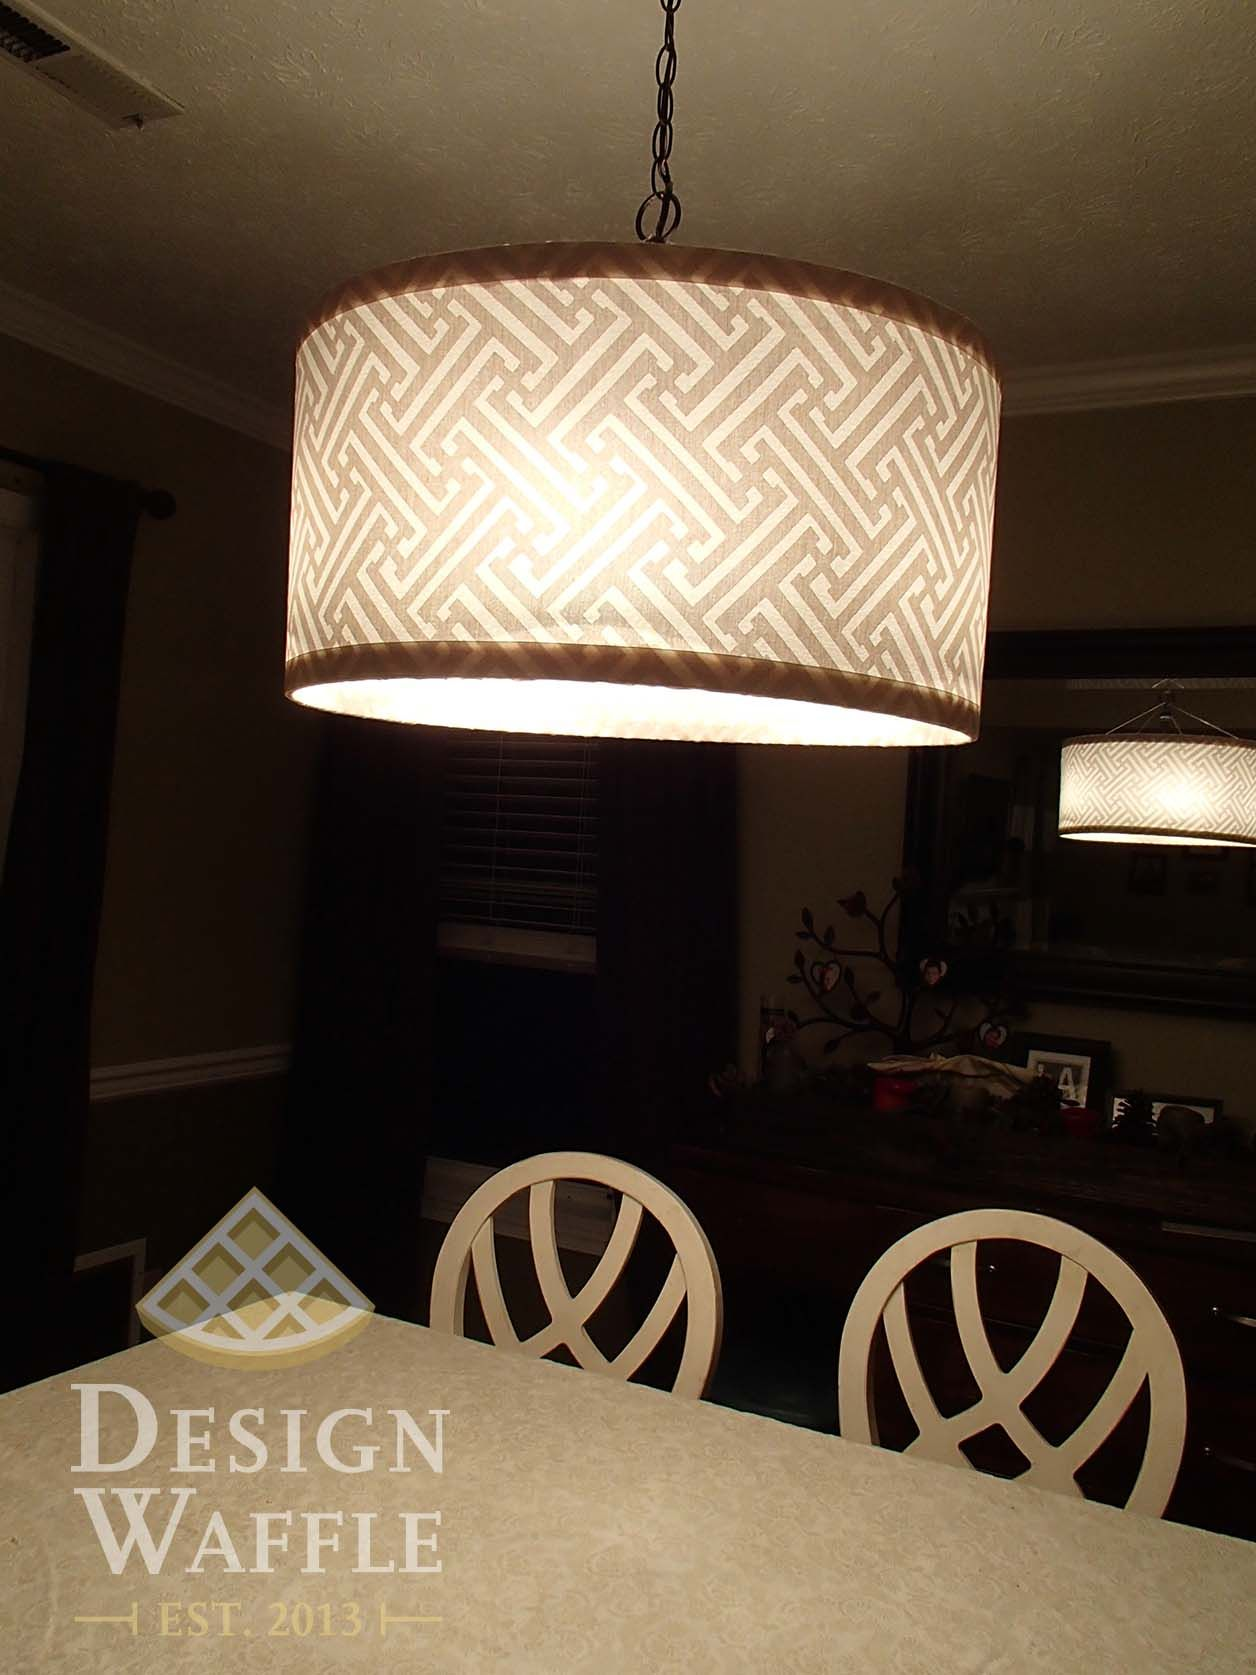 Diy Chandelier Drum Shade To Hide Outdated Light Fixture Ly